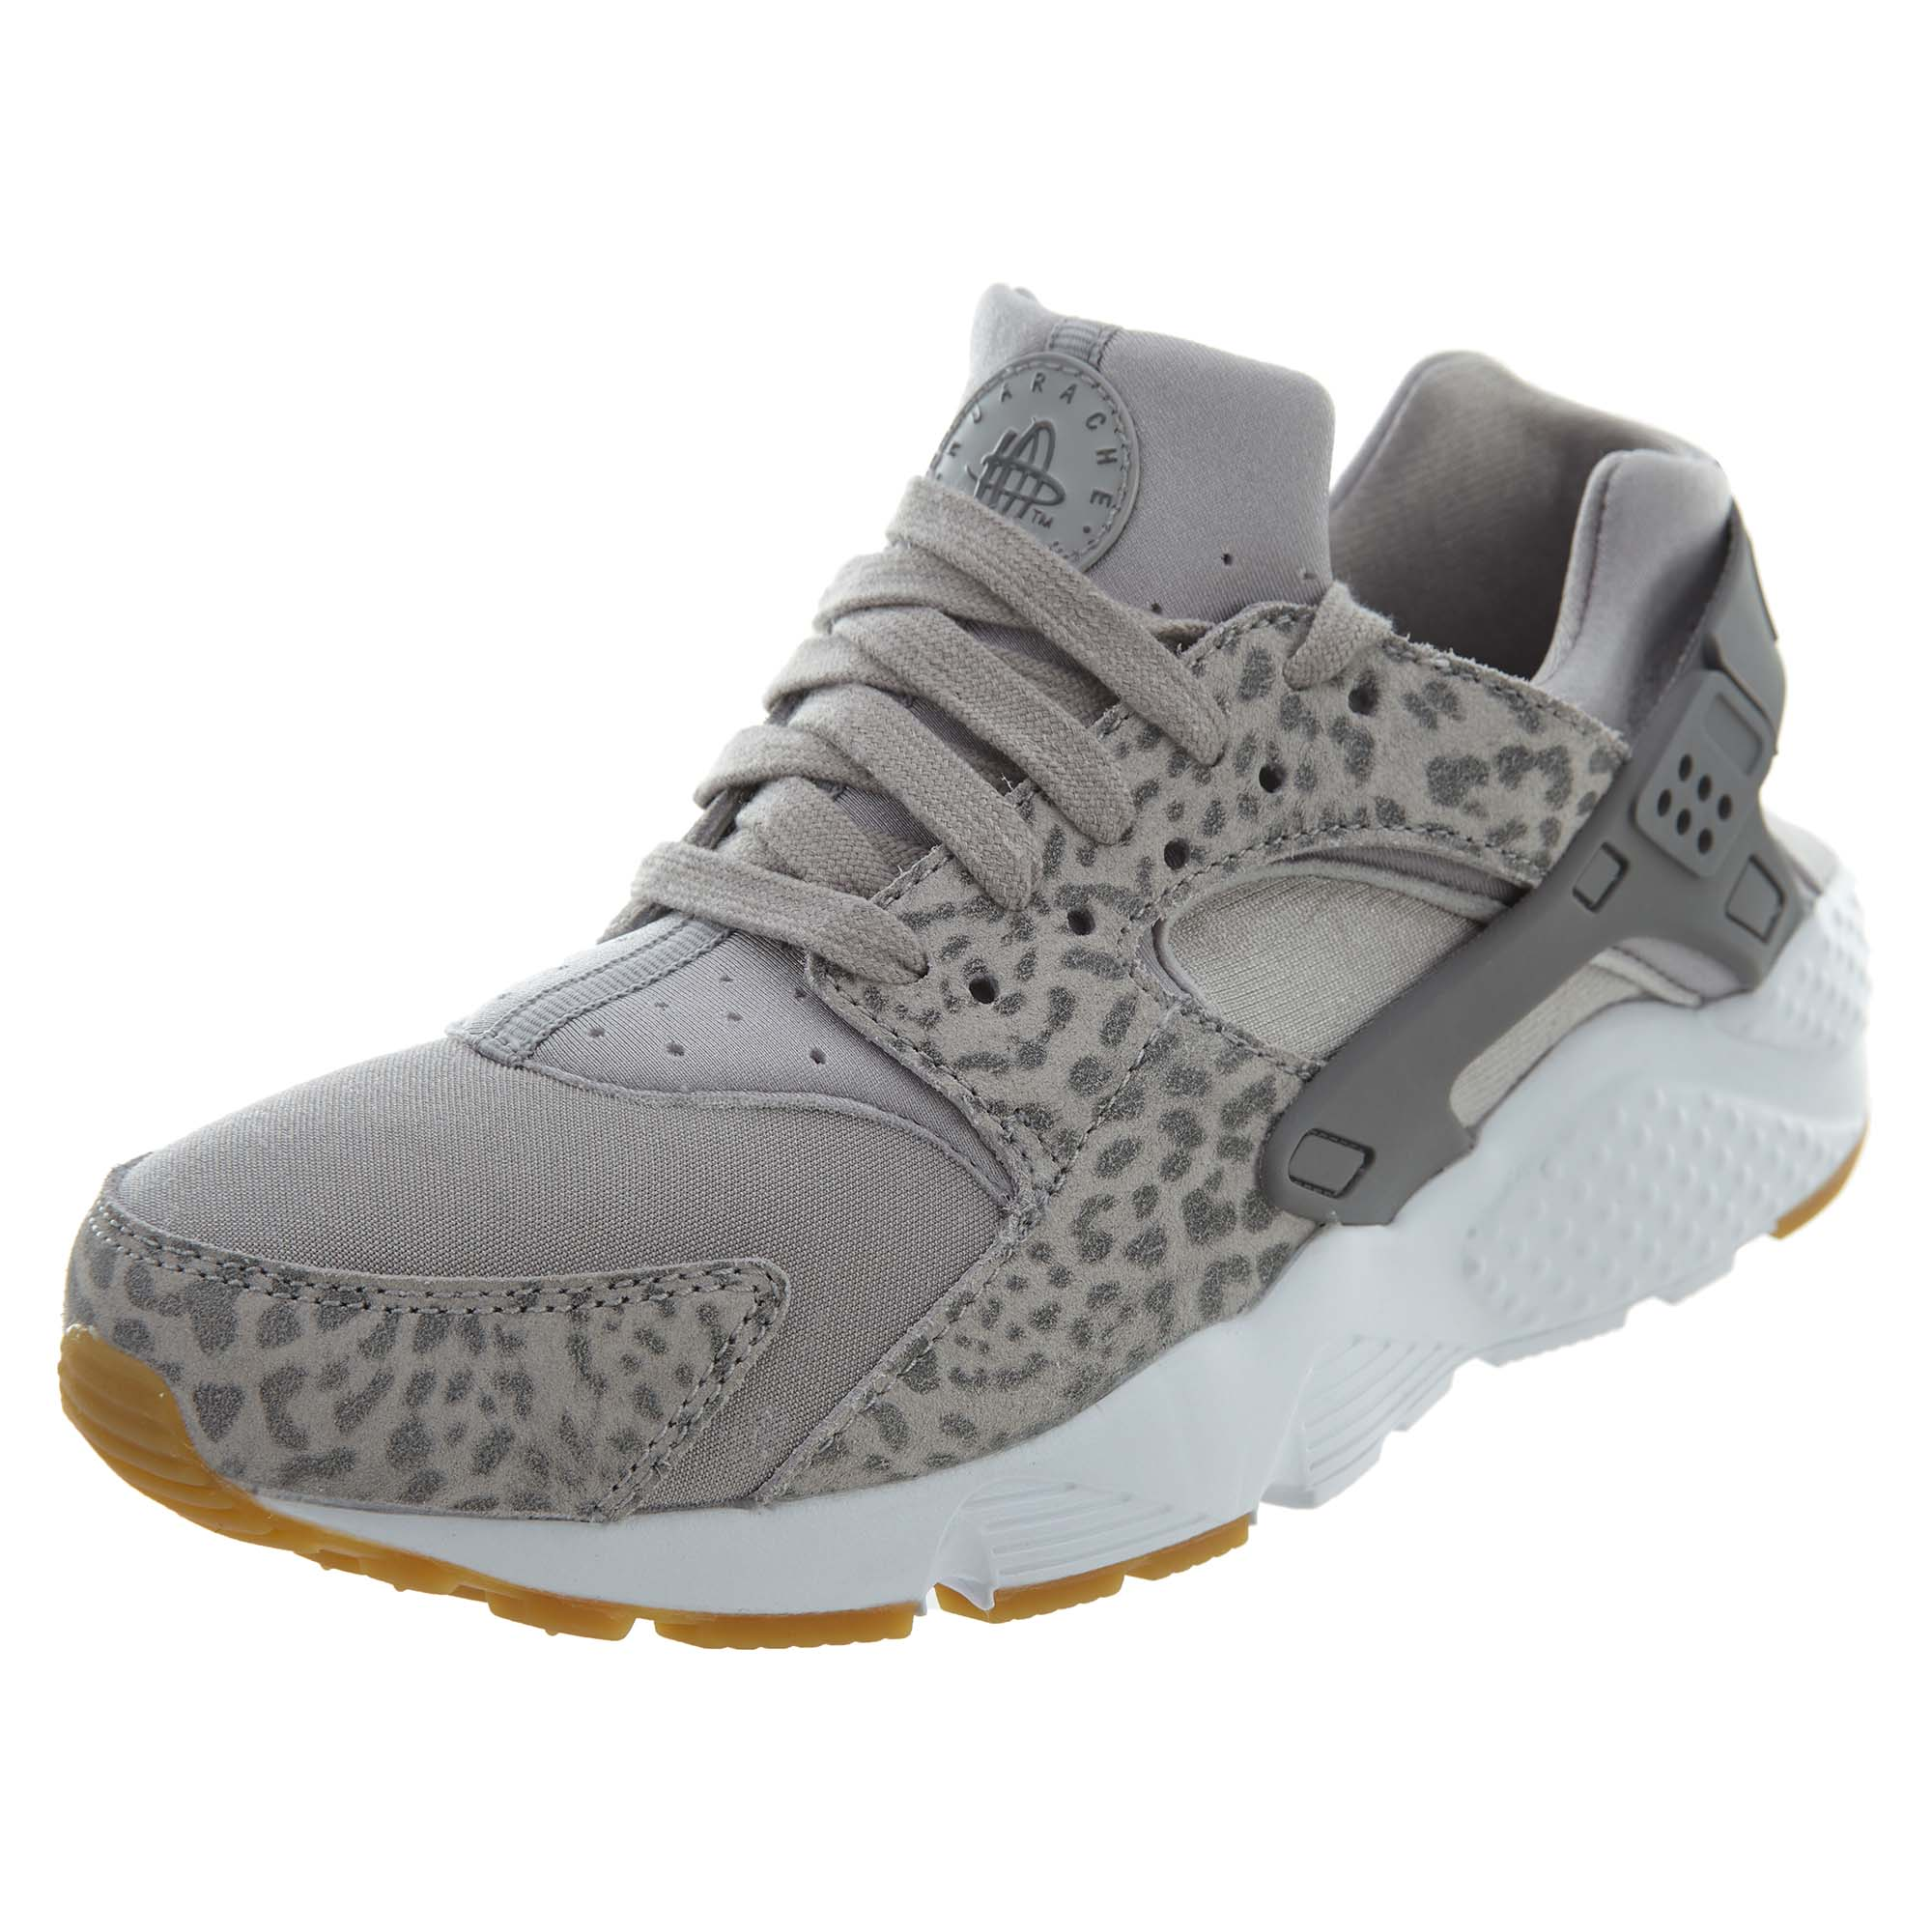 quality design 8b514 f317a Details about Nike Big Kids Huarache Run SE Running Shoes 904538-007